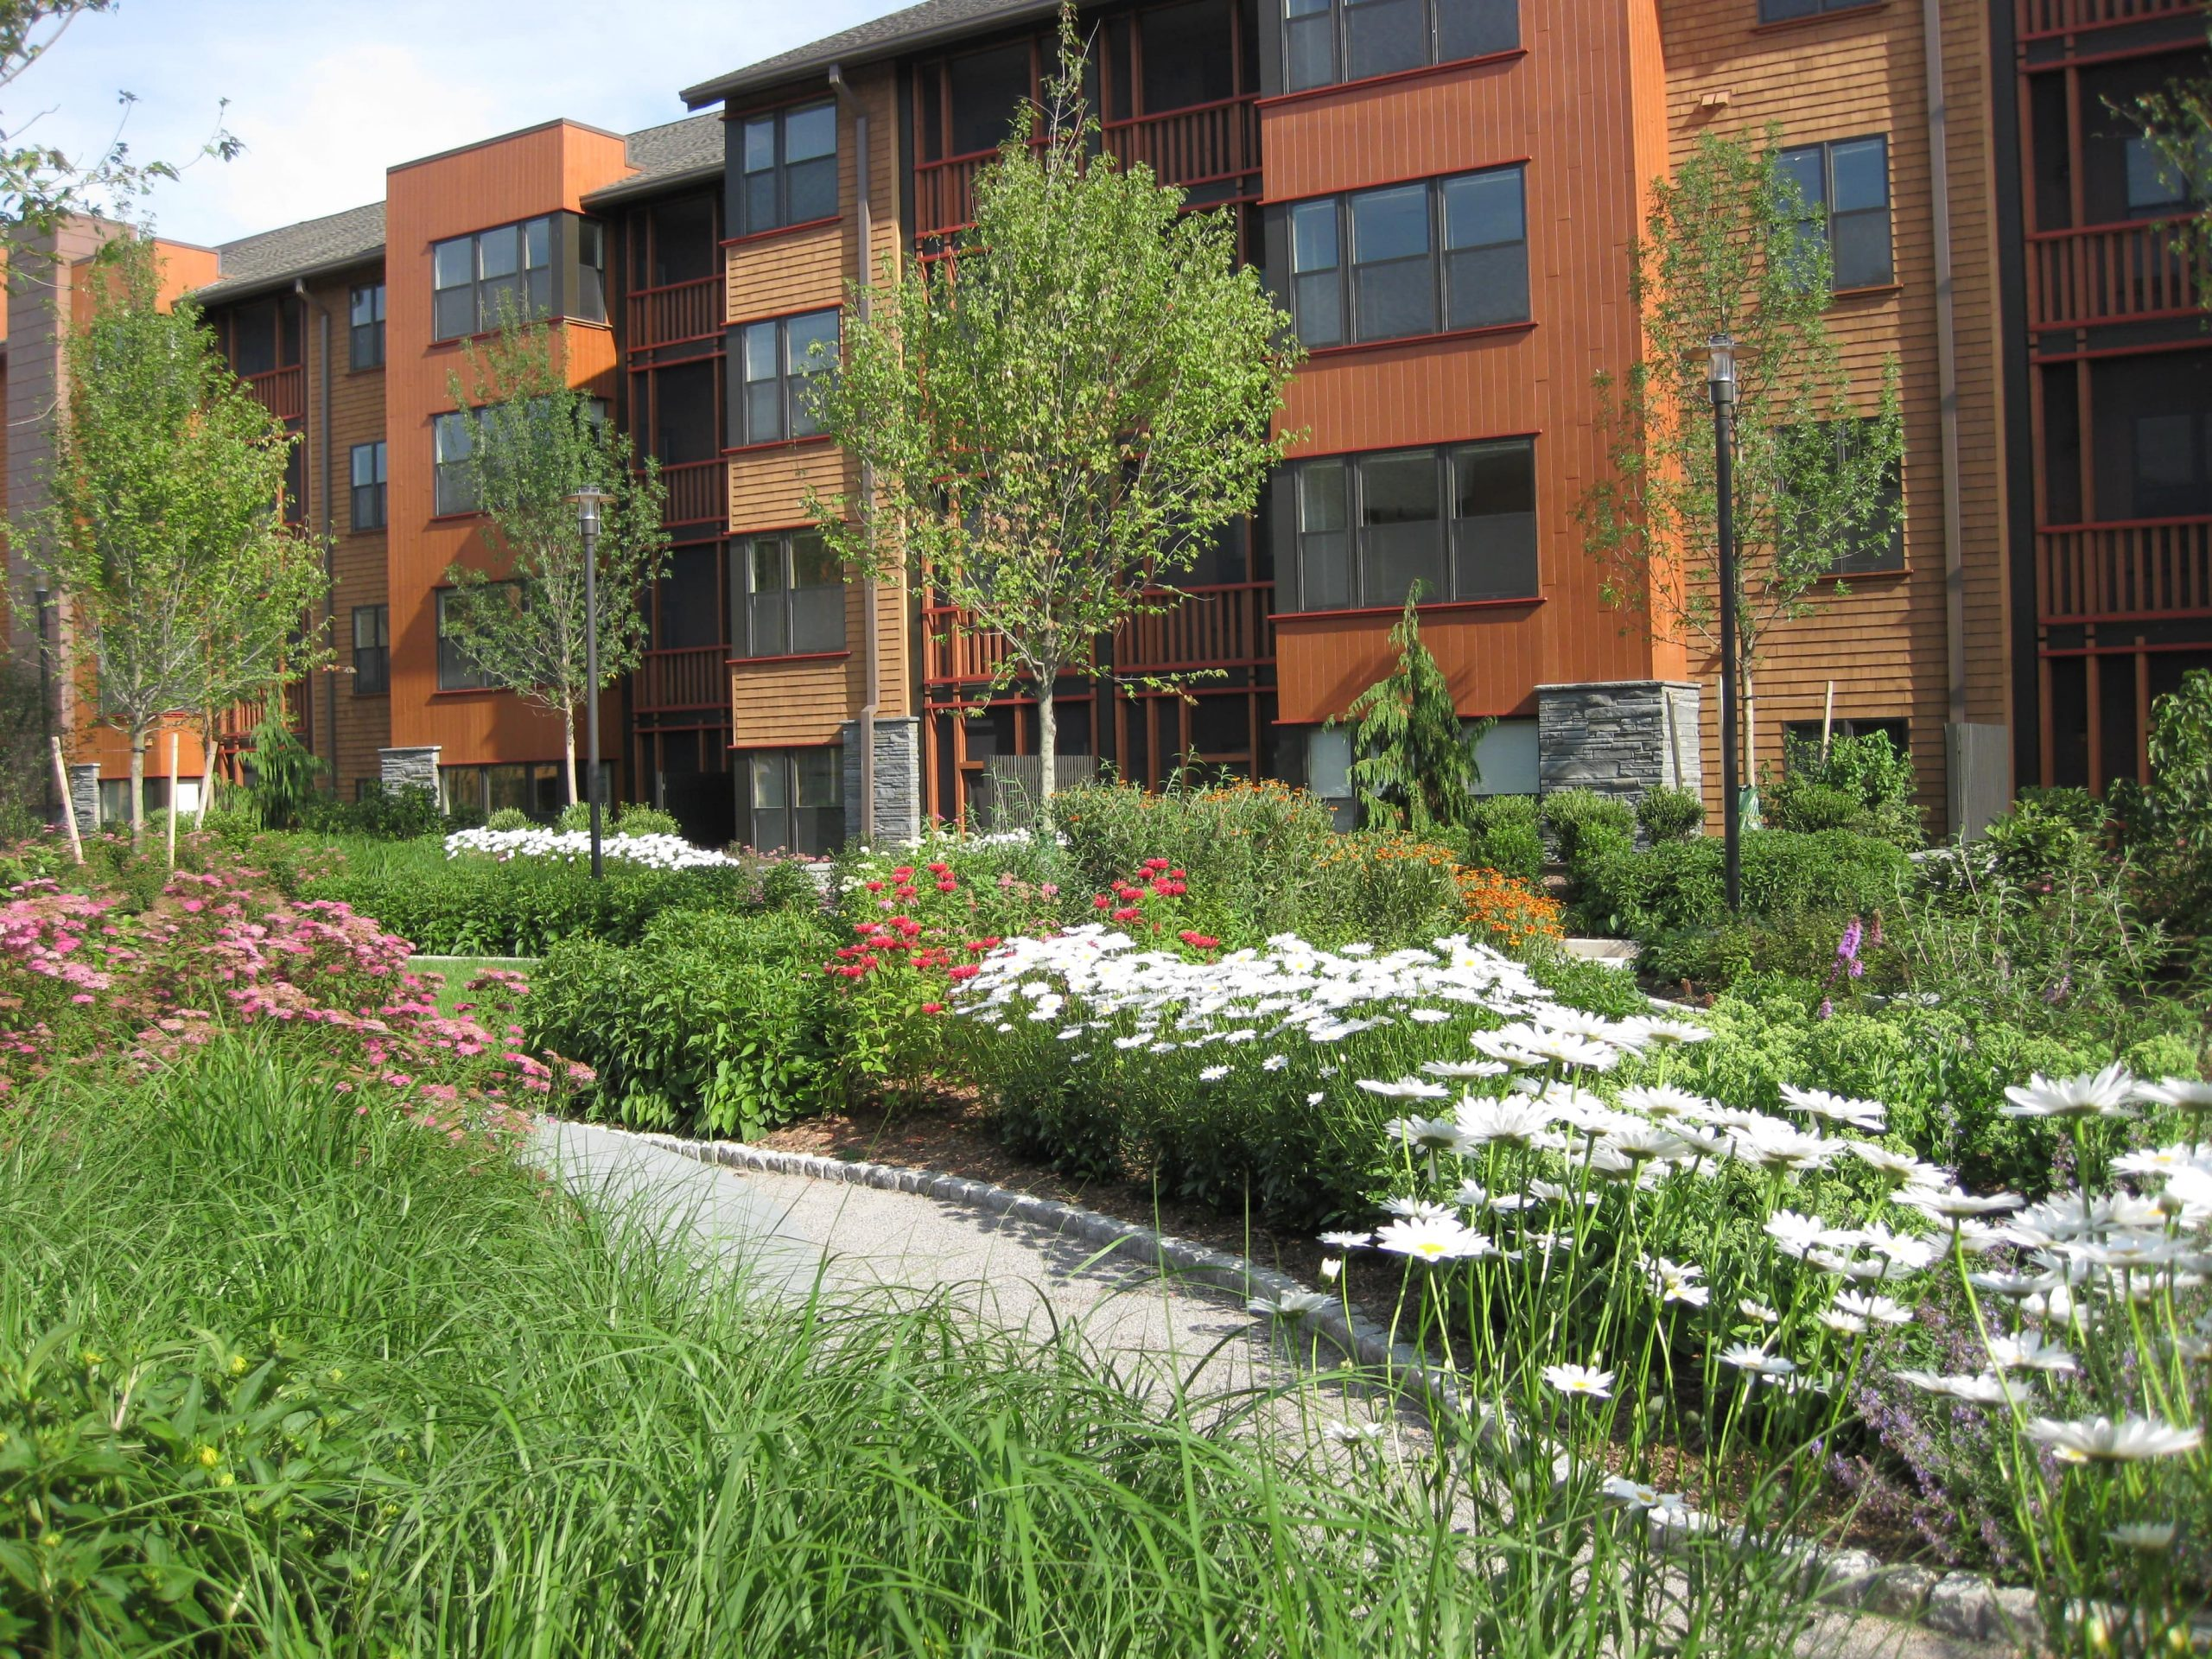 Fully landscaped walking path in a residential area with flowers and plants on either side.